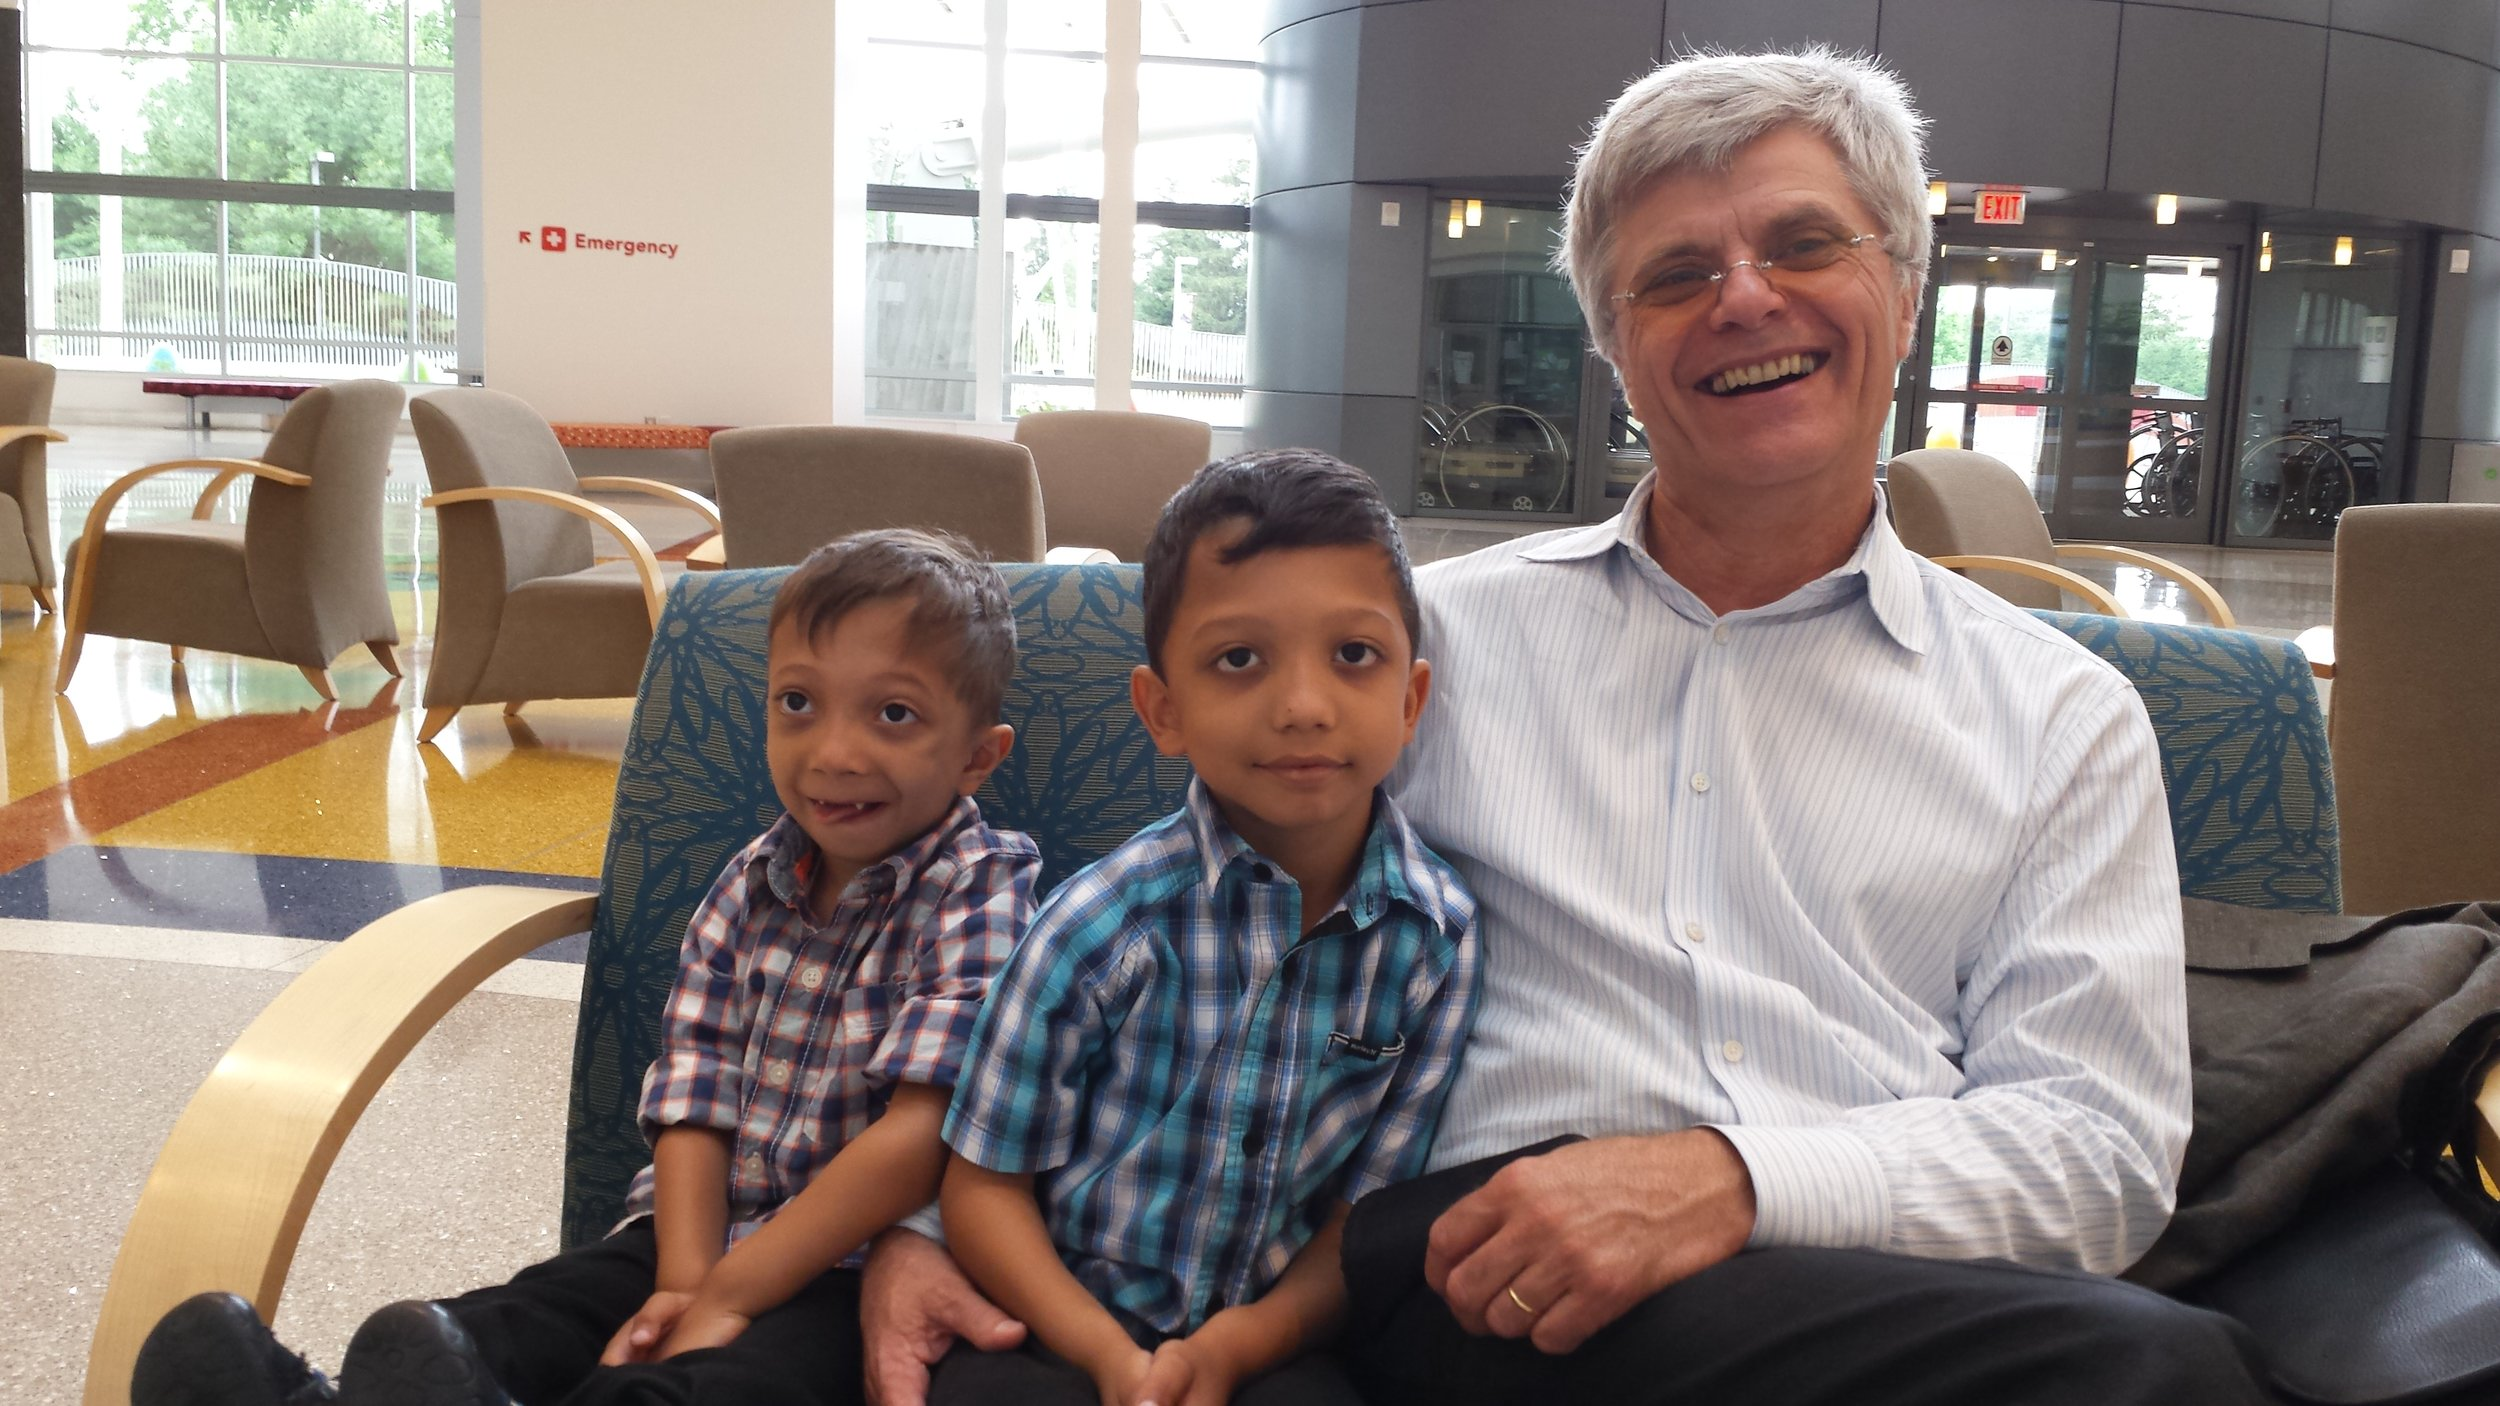 Jahan, Arshaan and Dr. Jueppner